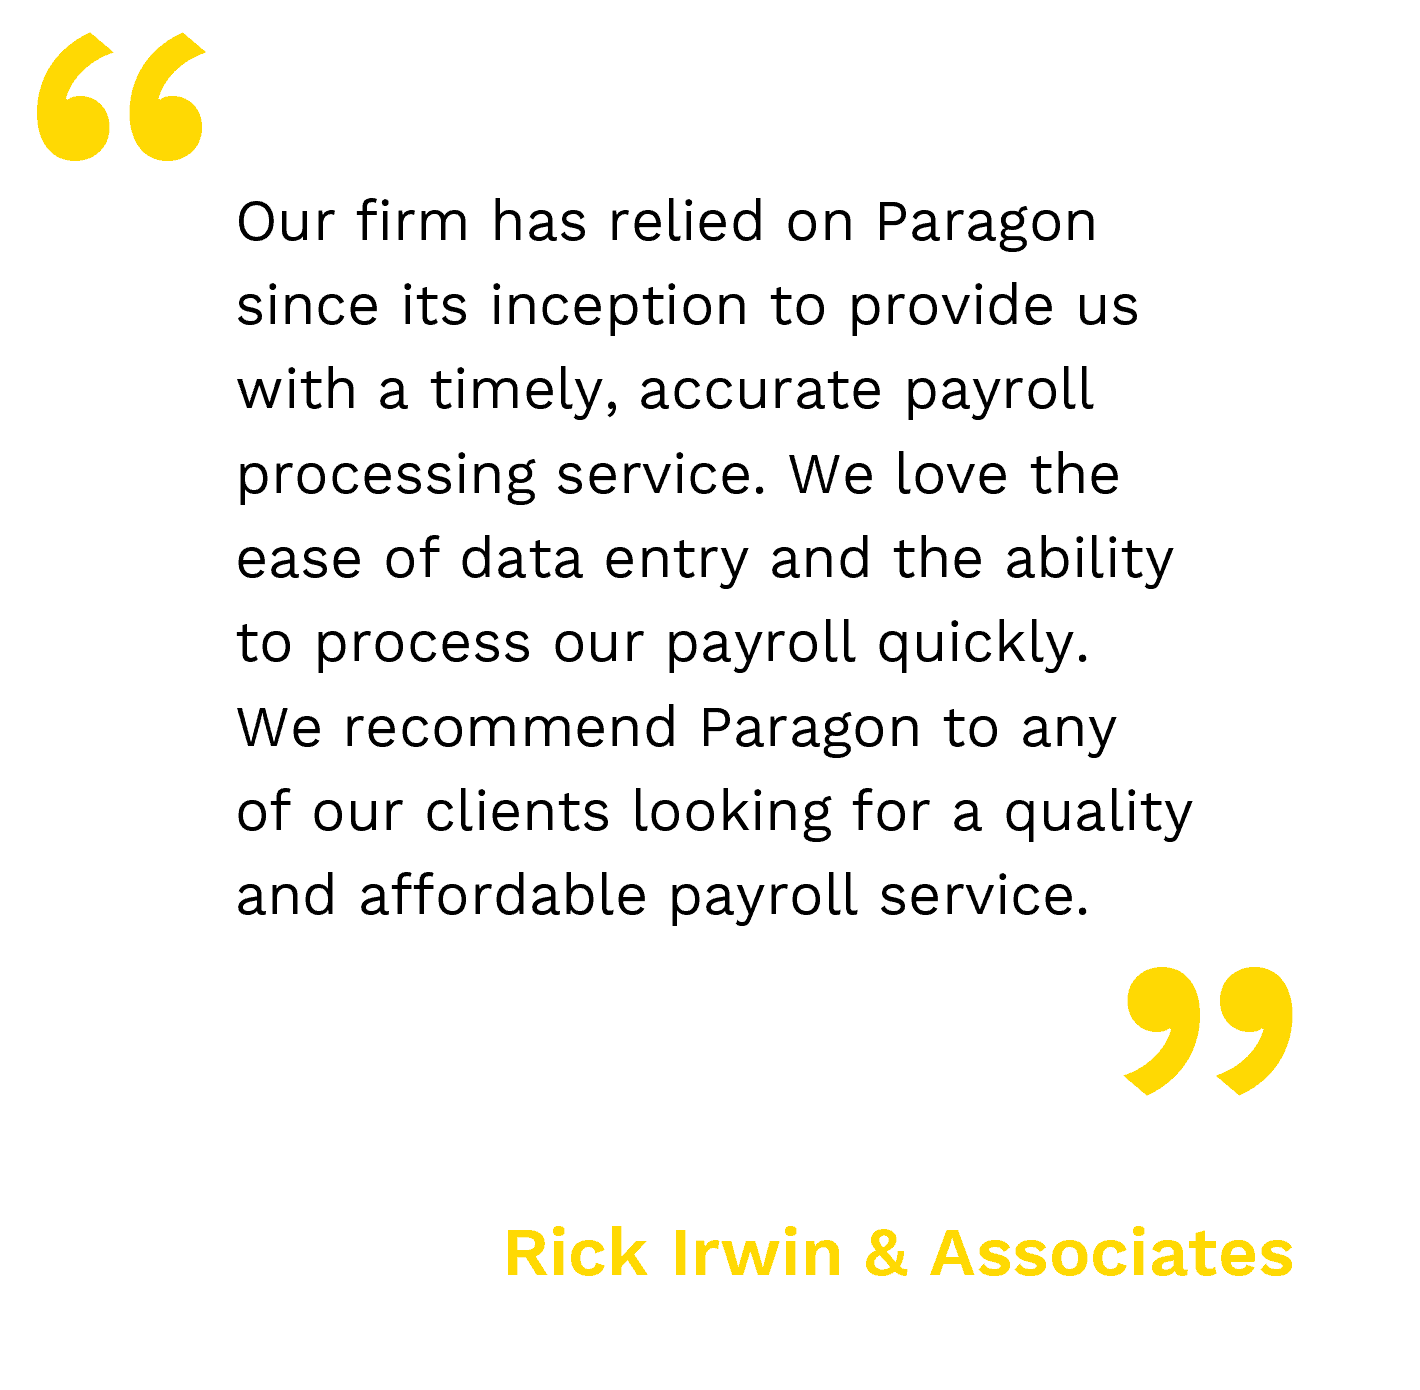 our firm has relied on paragon since its inception to provide us with a timely, accurate payroll processing service. we love the ease of data entry and the ability to process our payroll quickly. - rick Irwin and associates